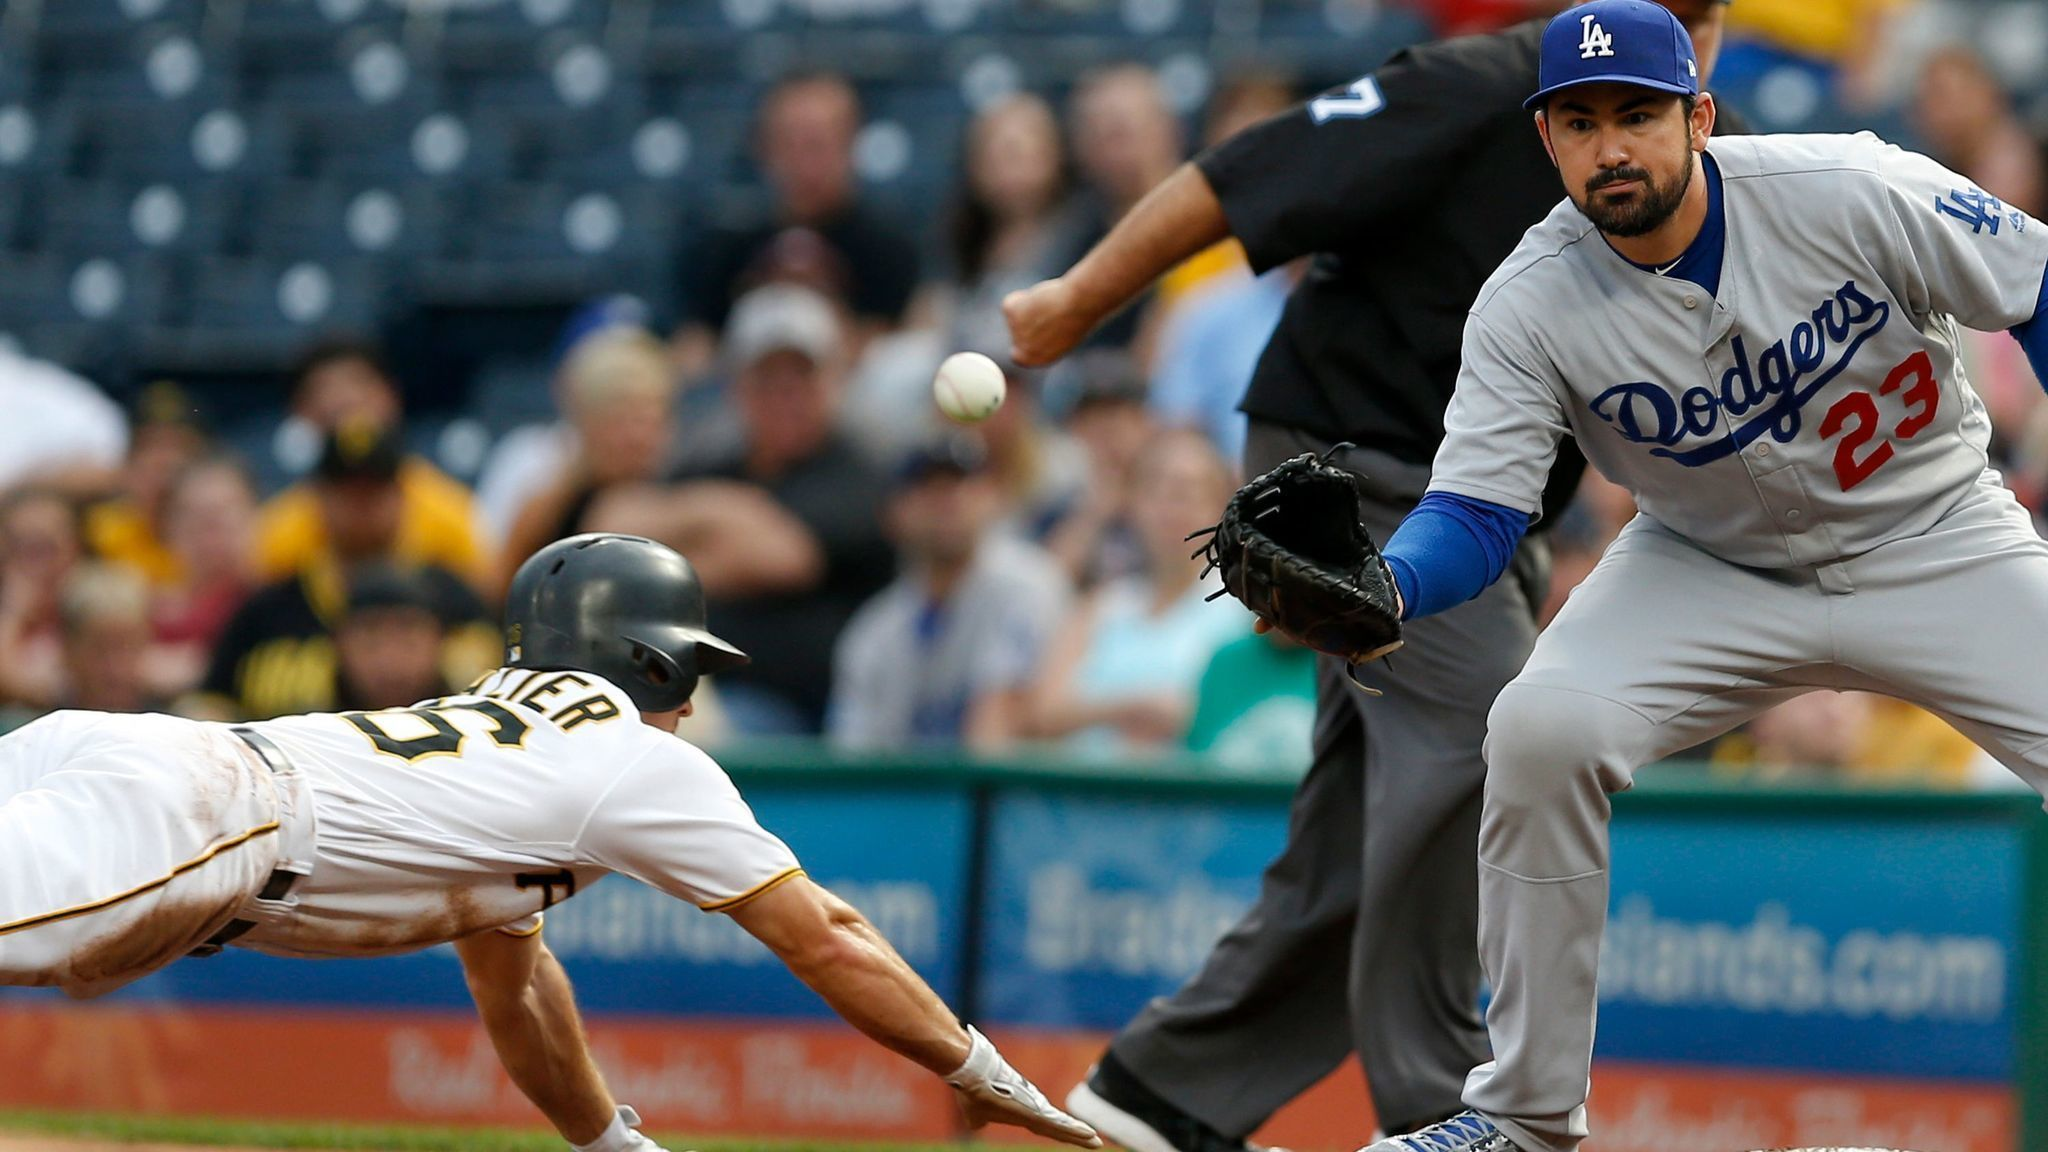 Adrian Gonzalez collects 2000th hit during Dodgers' 8-5 battering of Pirates